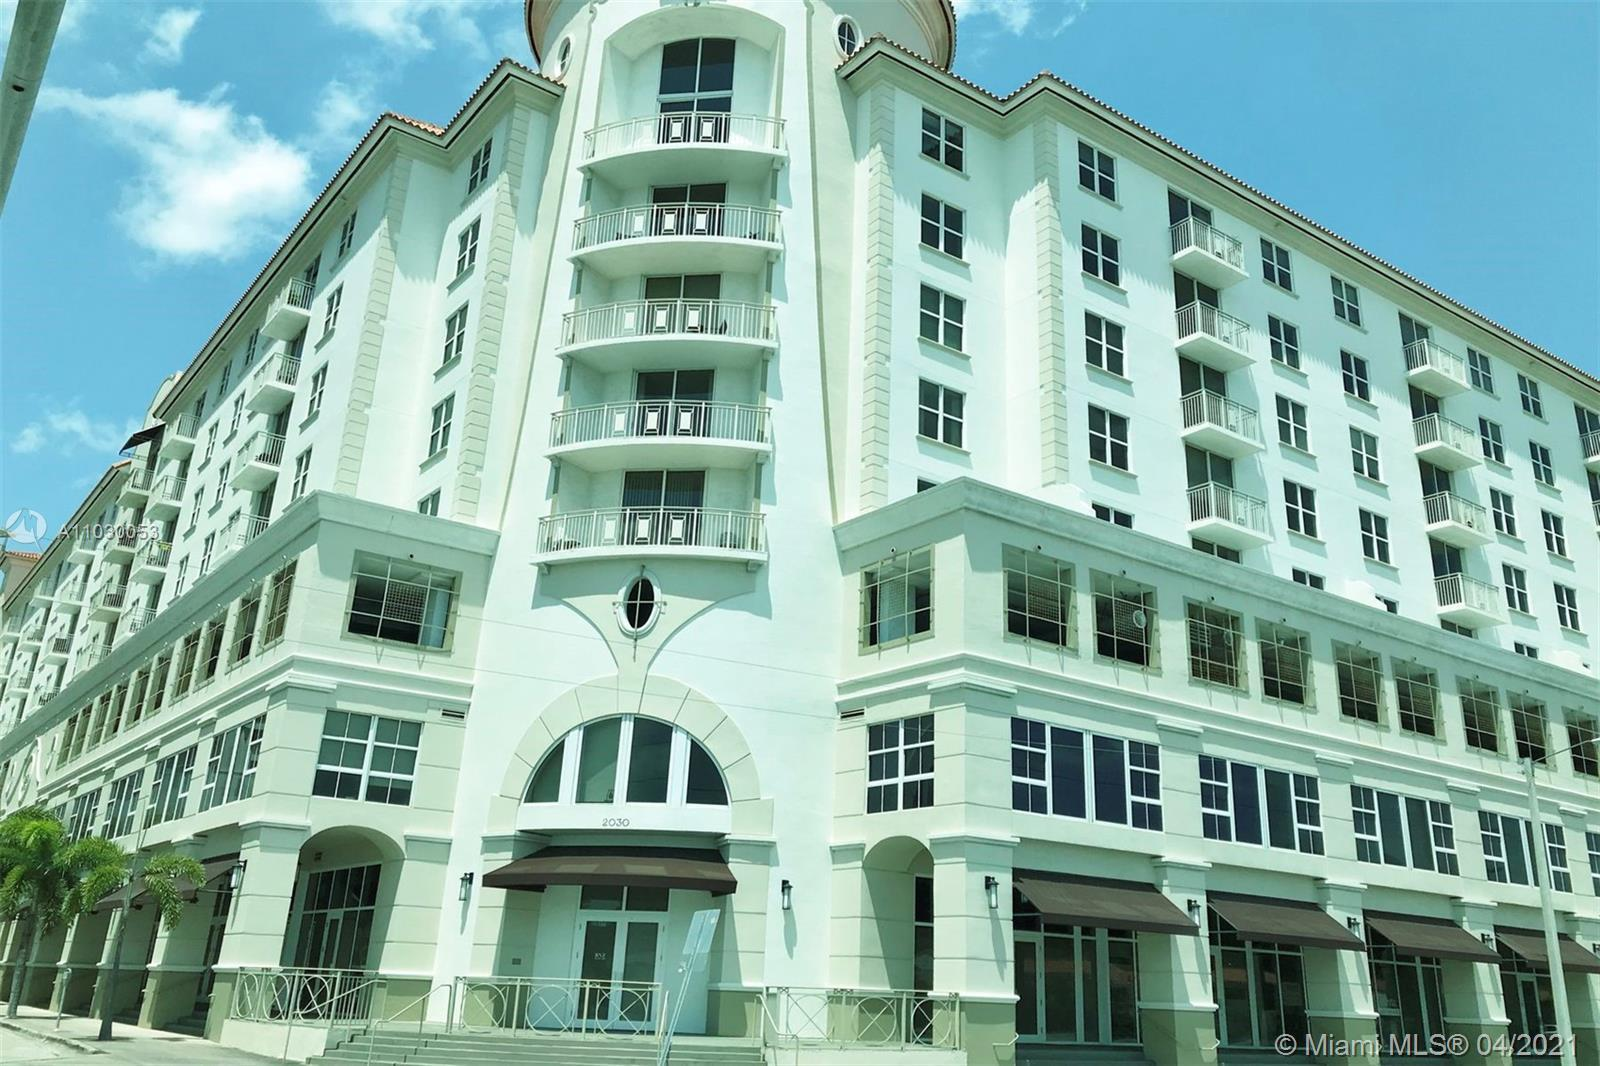 The Minorca Condo in the Heart of Coral Gables,  featuring a large 2 bedroom, with split floor plan,